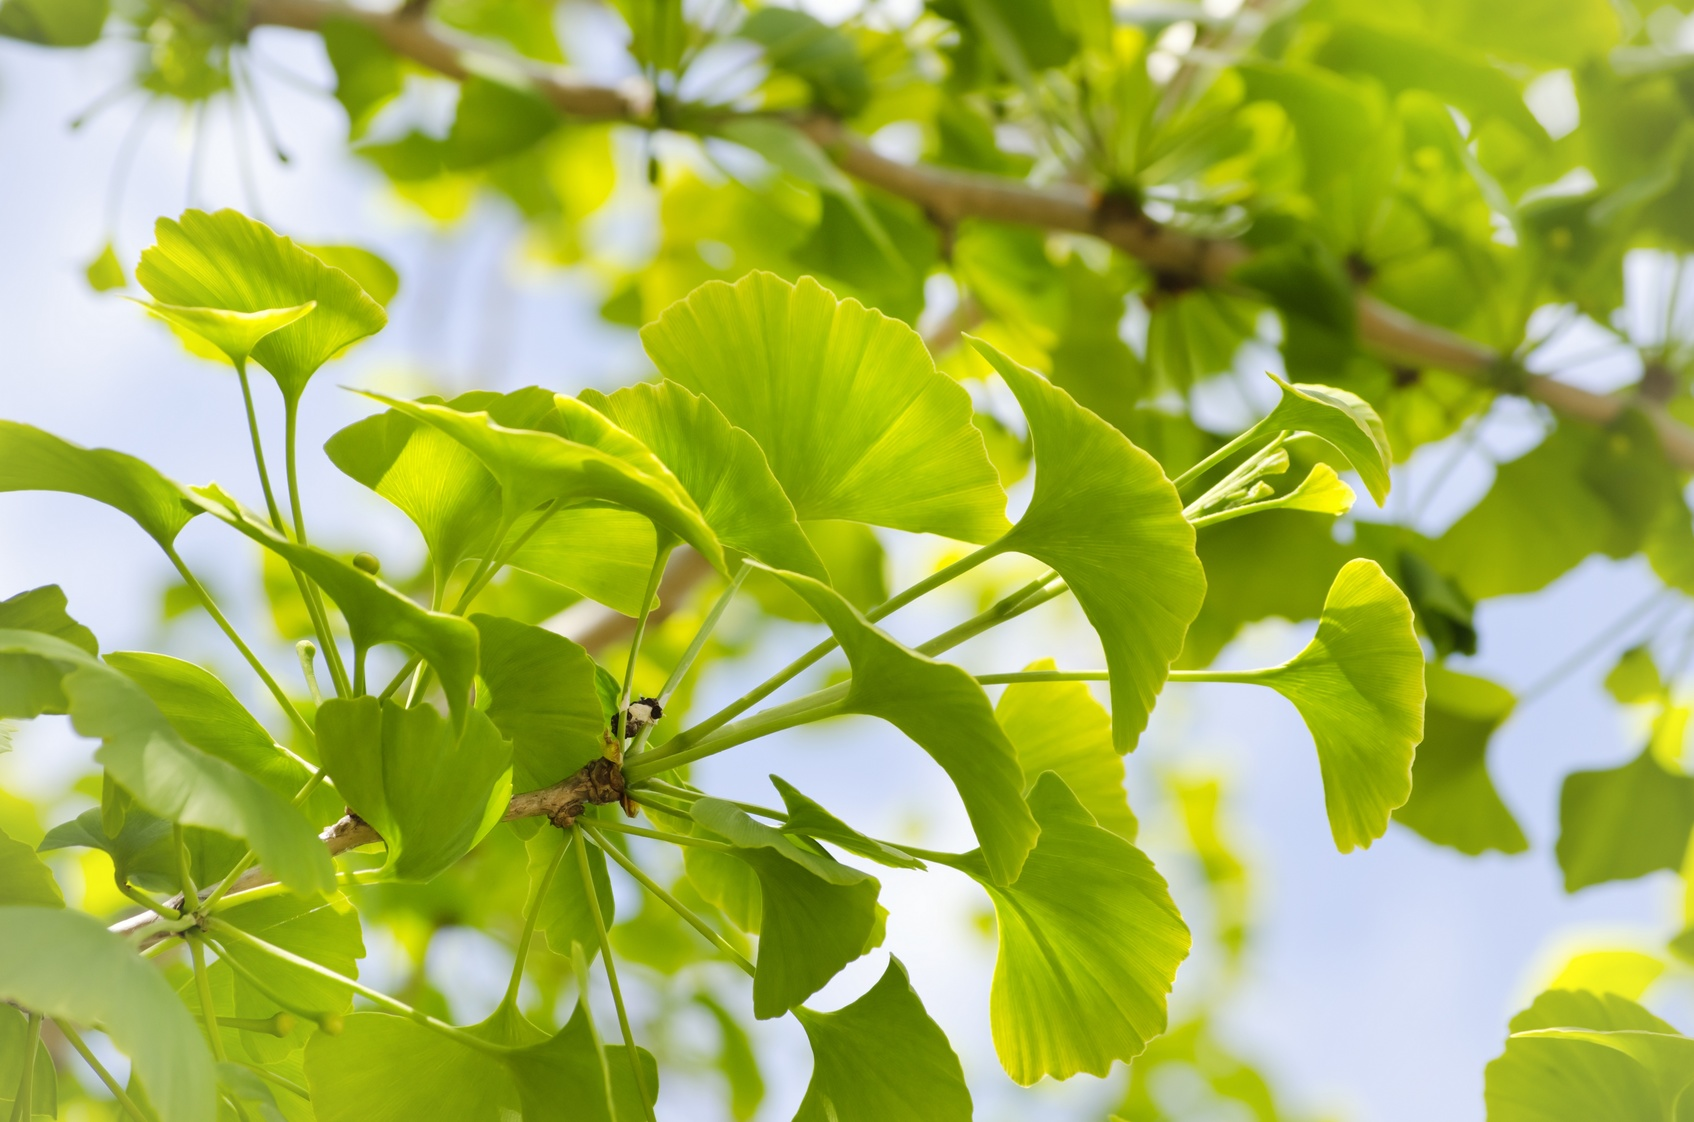 Photo of Ginkgo Biloba Tree Leaves Over Blue Sky